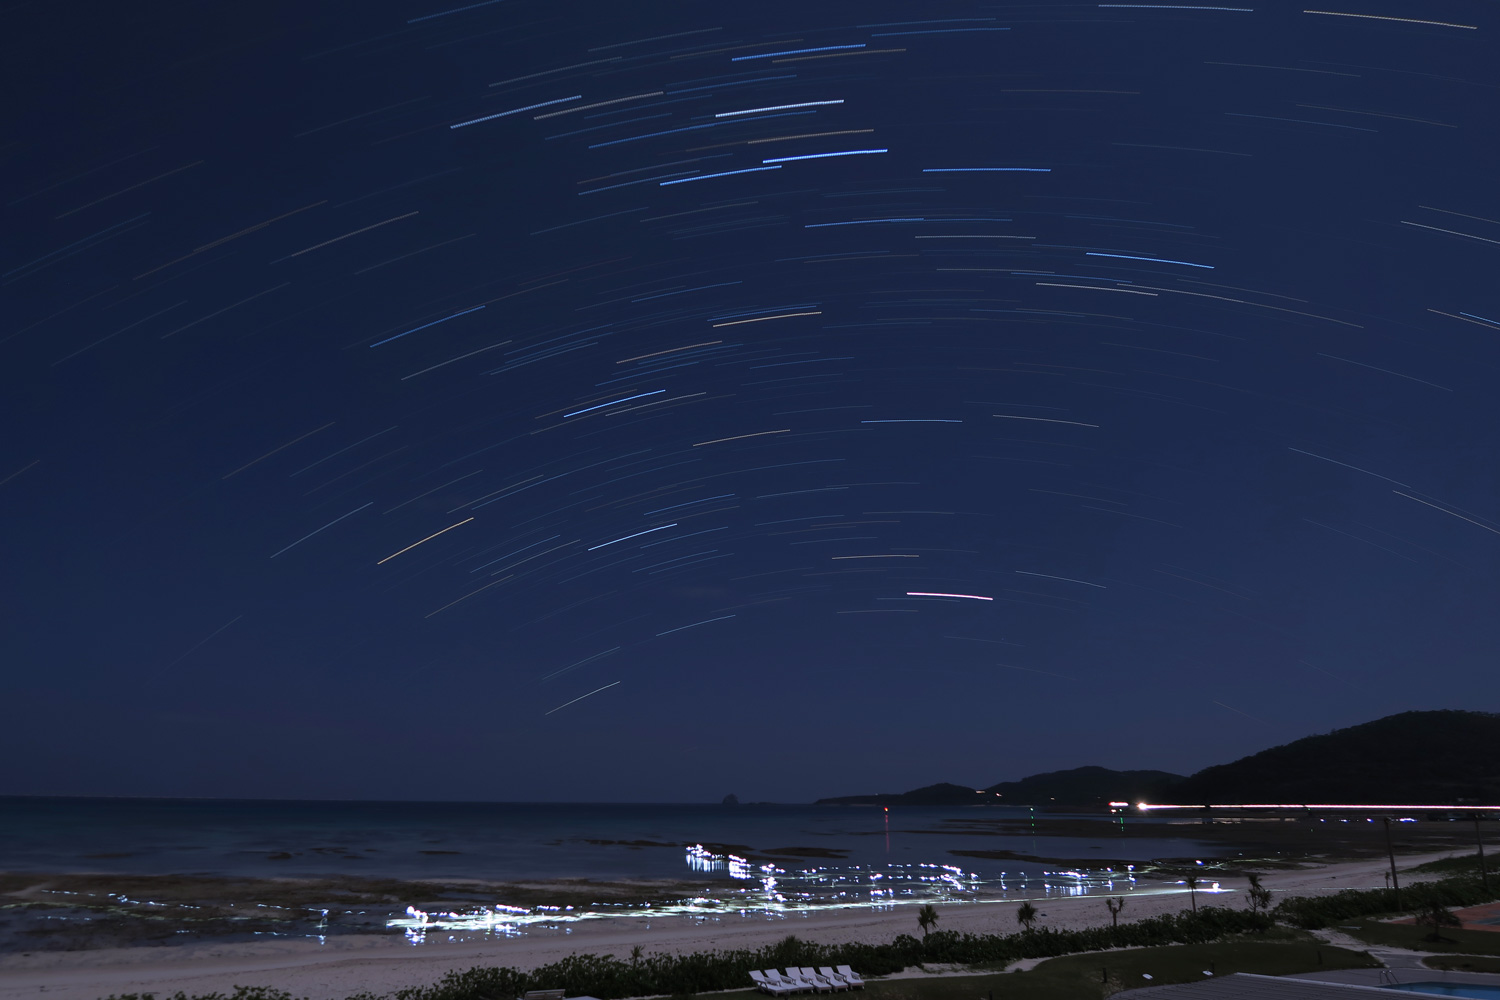 30 minute star trail exposure with people looking for crabs with flashlights at 2:00am.